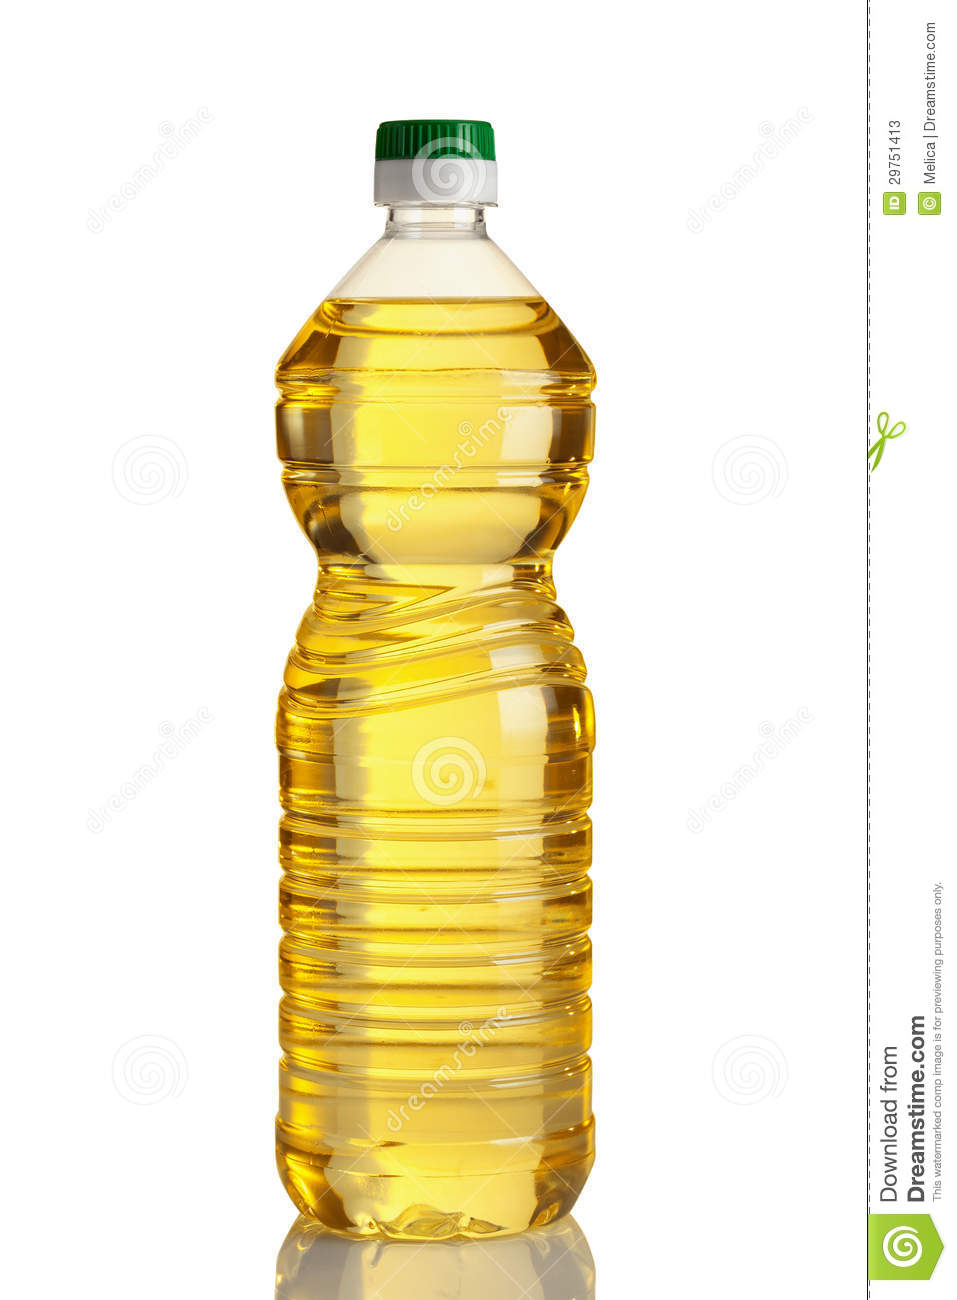 Cooking oil stock photos image 29751413 - Many times can reuse frying oil ...